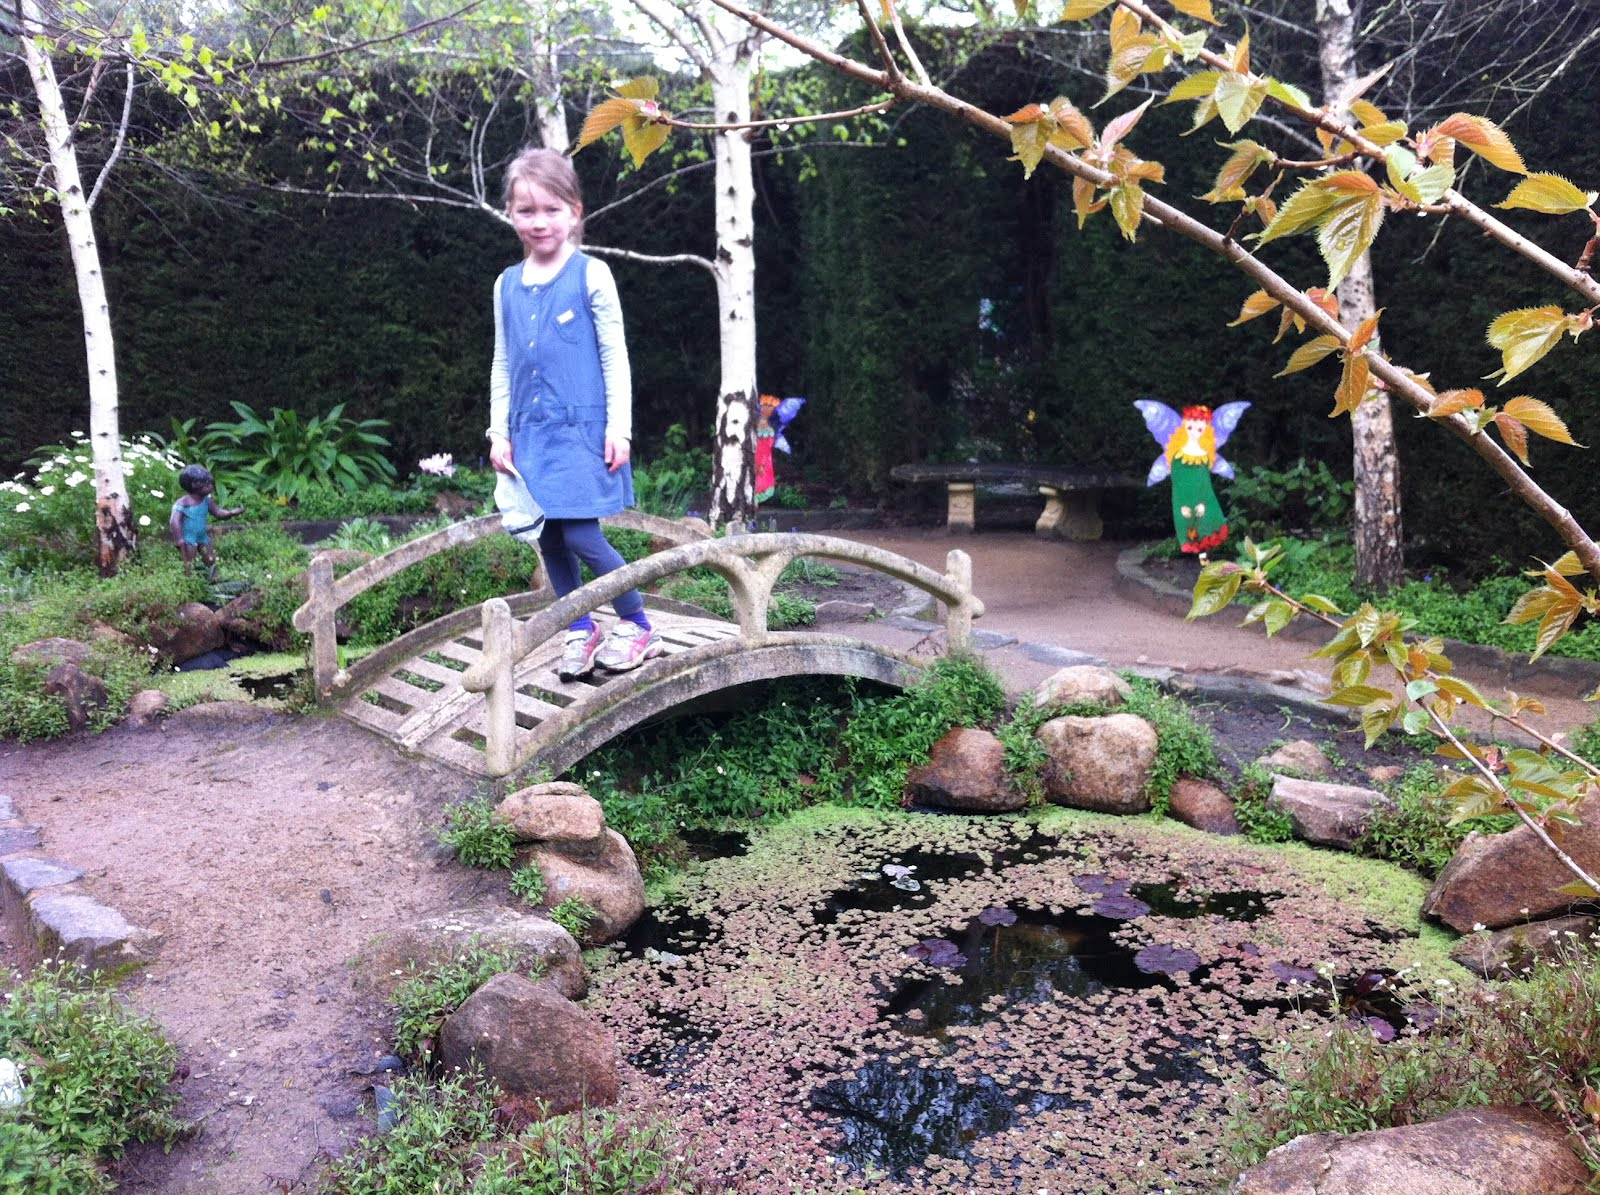 Enchanted Garden: Things To Do With Under 5's